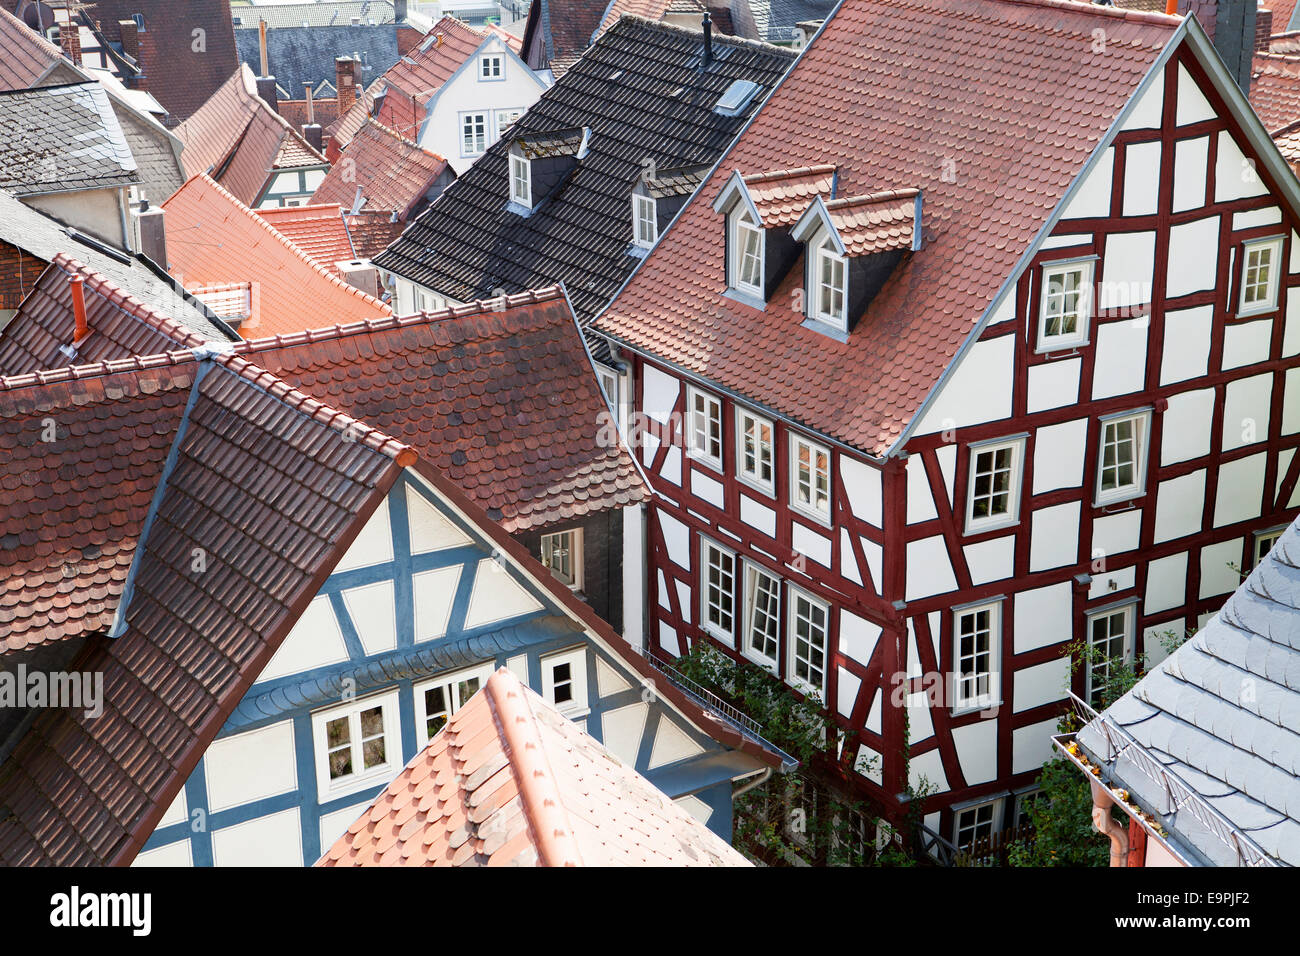 Overlooking the roofs of the historic centre, Marburg, Hesse, Germany, Europe, - Stock Image